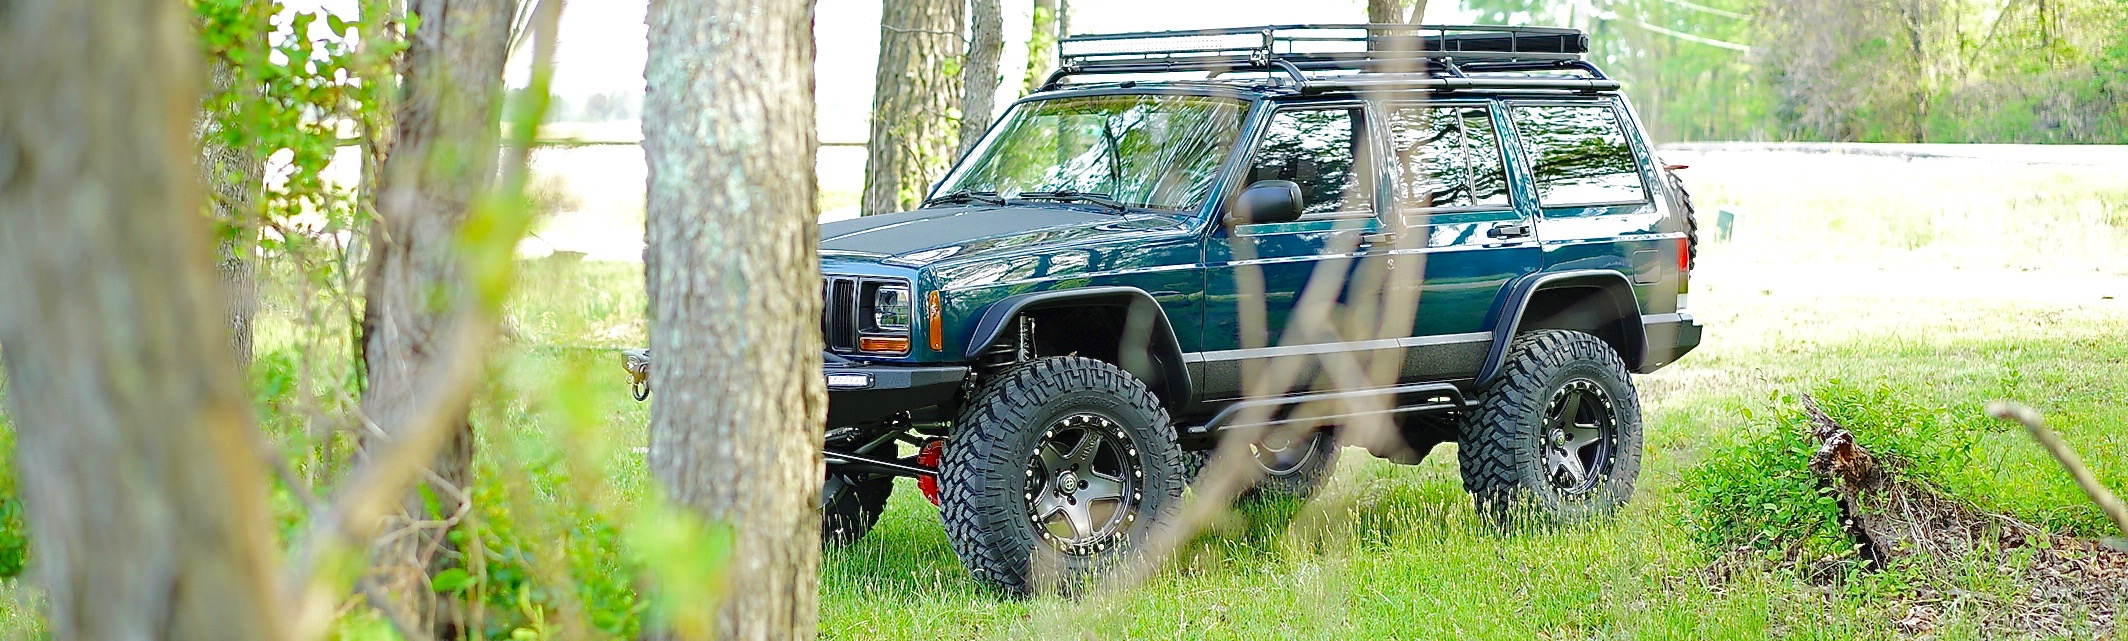 medium resolution of lifted jeep cherokee for sale jeep cherokee xj for sale jeep cherokee lift kit